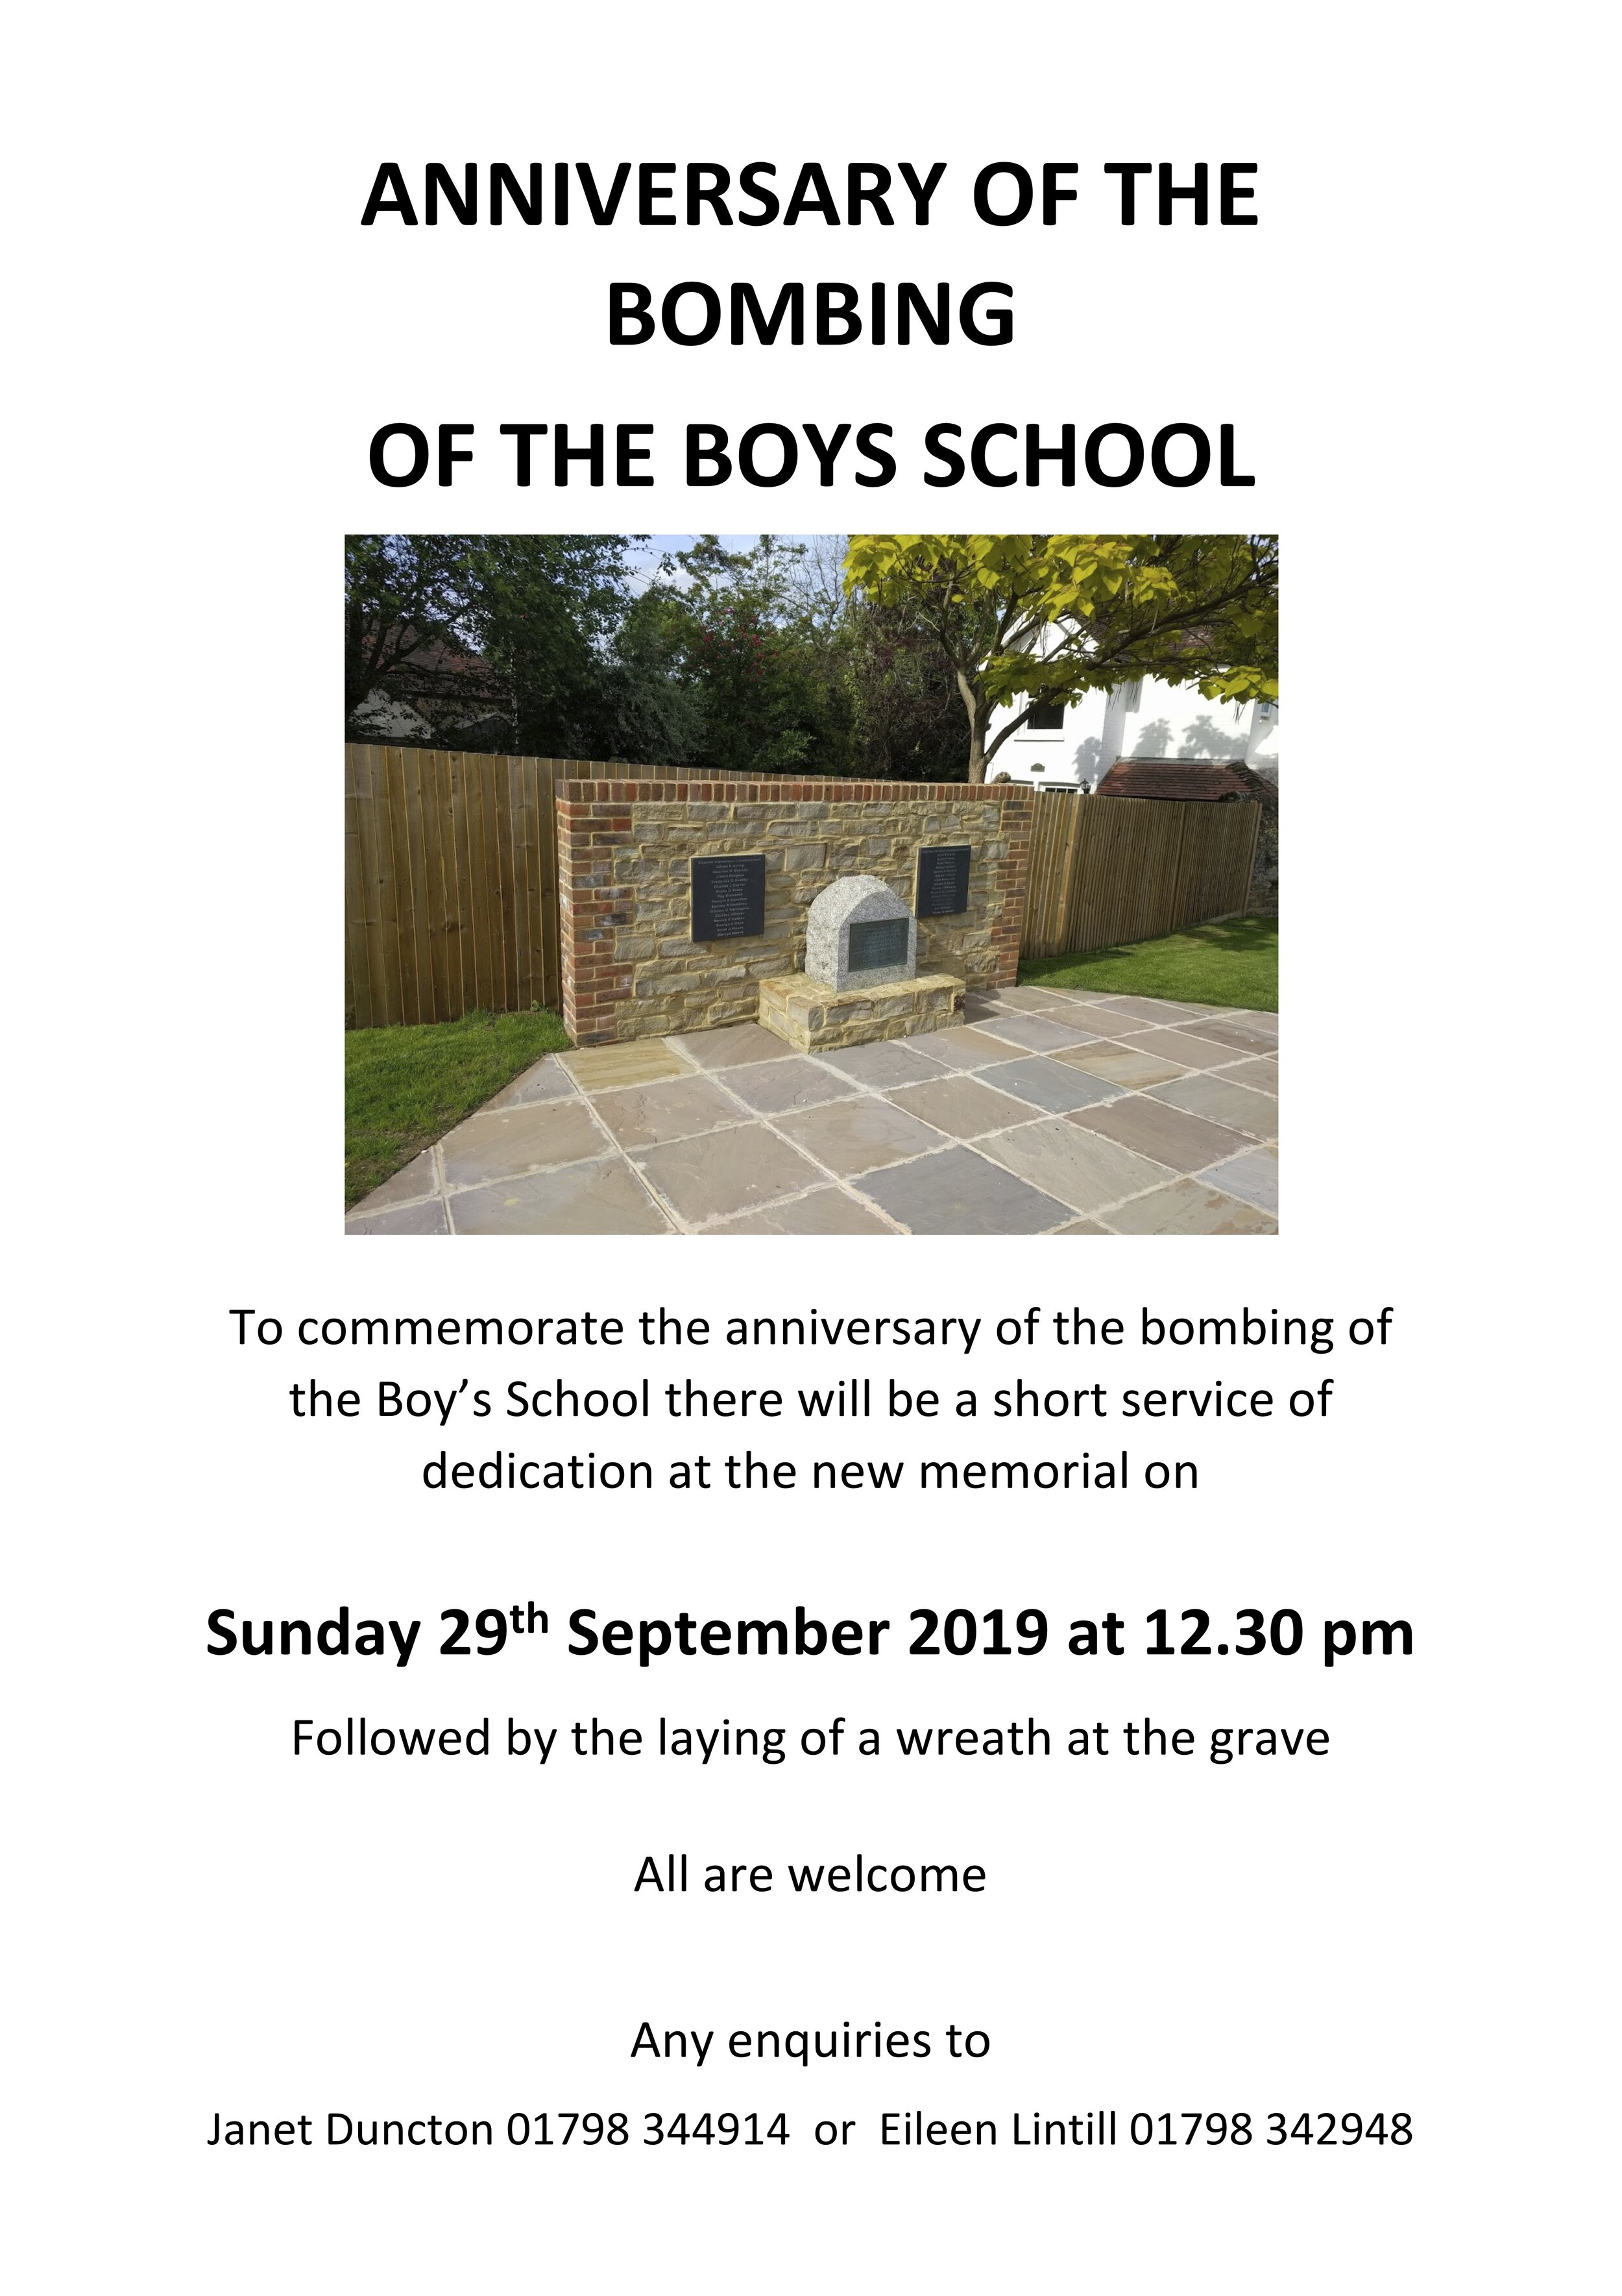 Anniversary of the Bombing of the Boys School